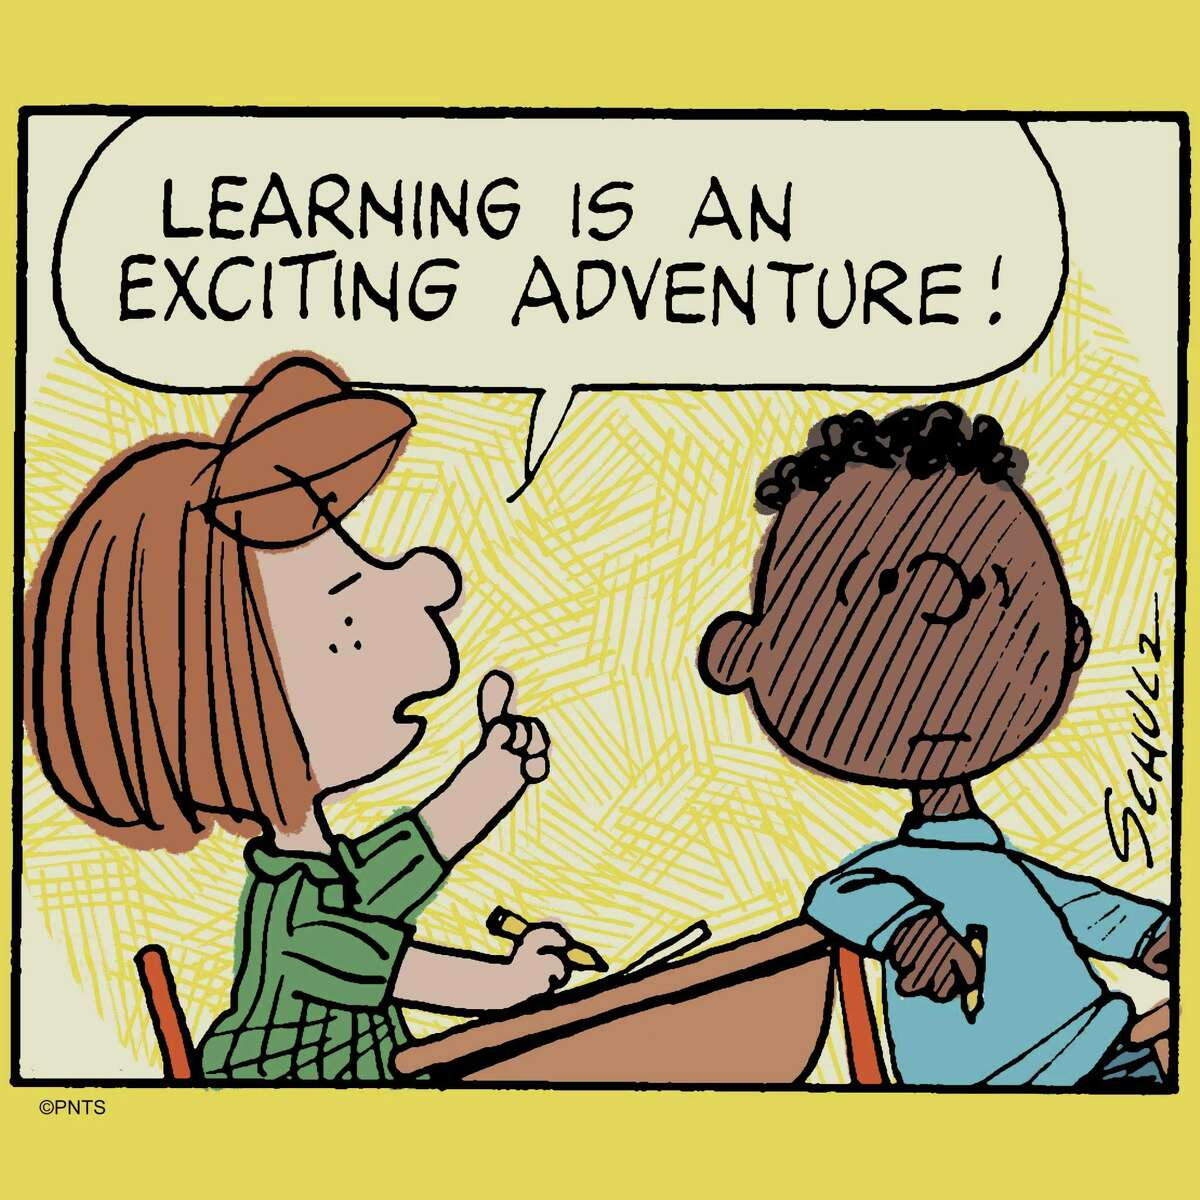 Peanuts.com is where parents who are home-schooling their children will find Charlie Brown and his friends featured in online lessons involving STEM skills, language arts and social studies. The free lessons, for ages 4 -14, were developed by curriculum specialists at Young Minds Inspired, based in North Haven.